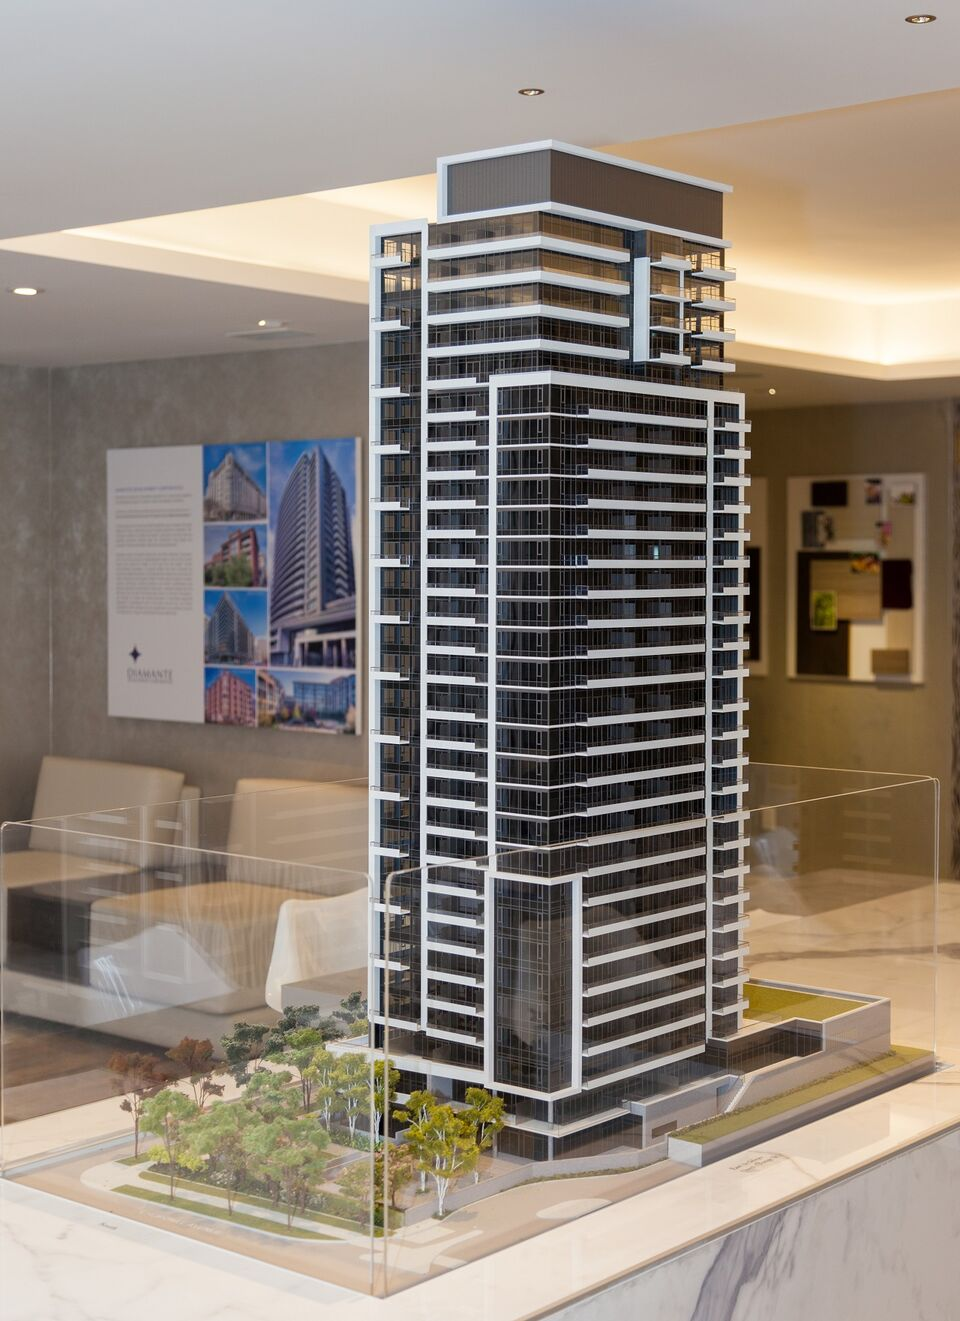 Scale Model Showcases Diamond Condominiums On Yonge